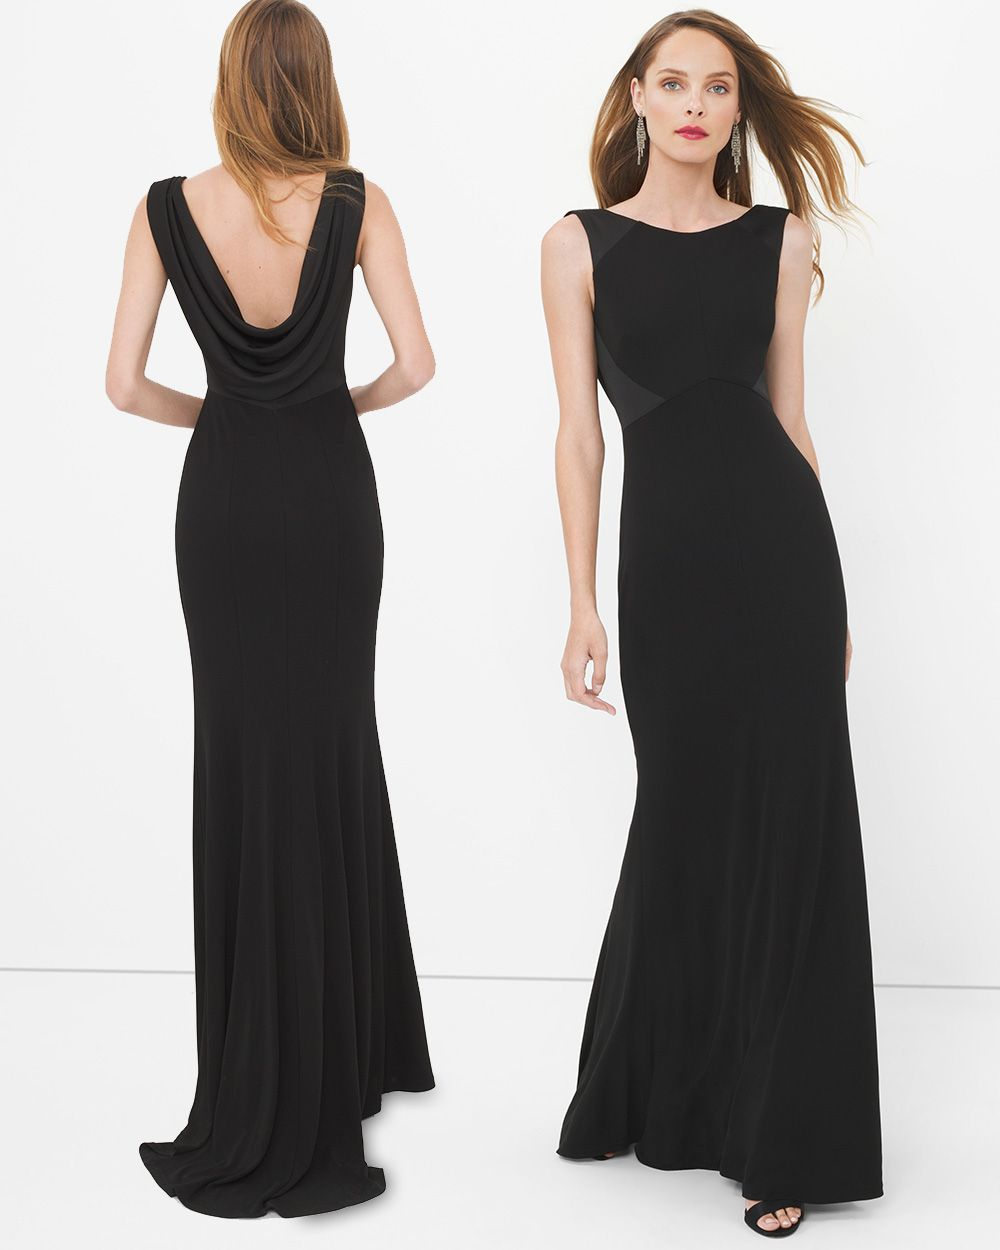 affordable dresses to wear to your next black tie event to wear